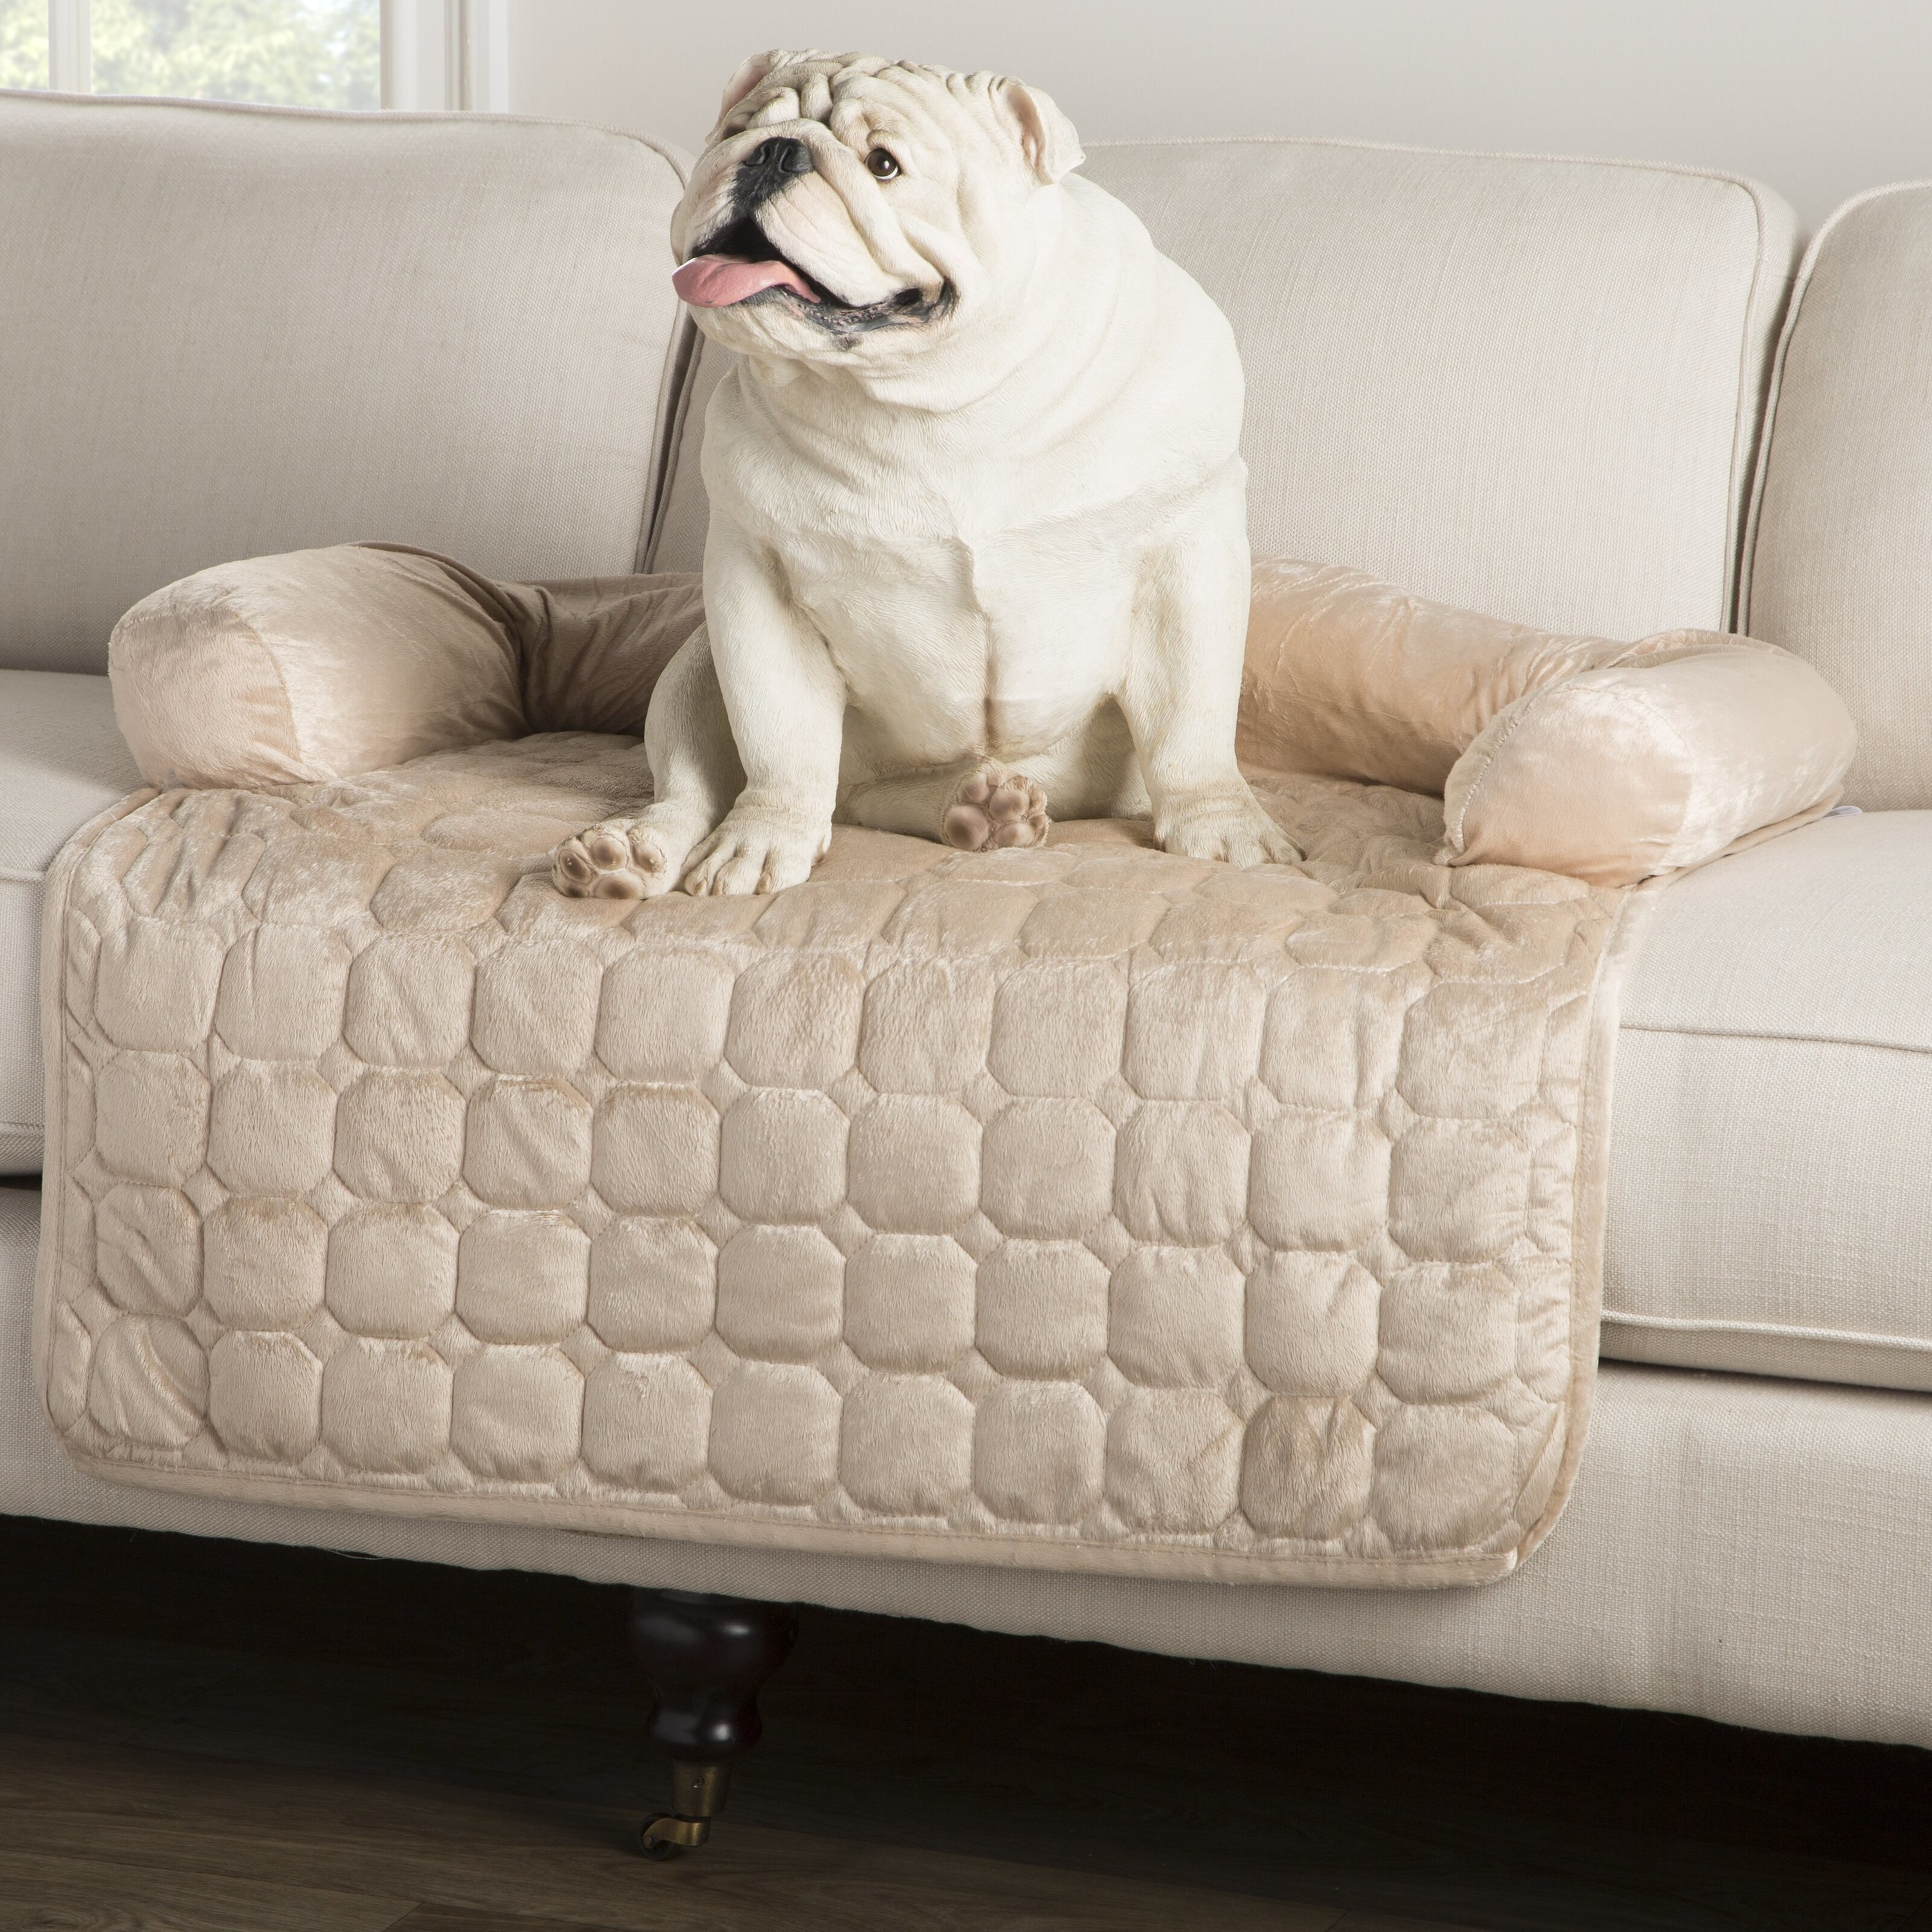 The furniture cover on a white couch with a bulldog resting on it